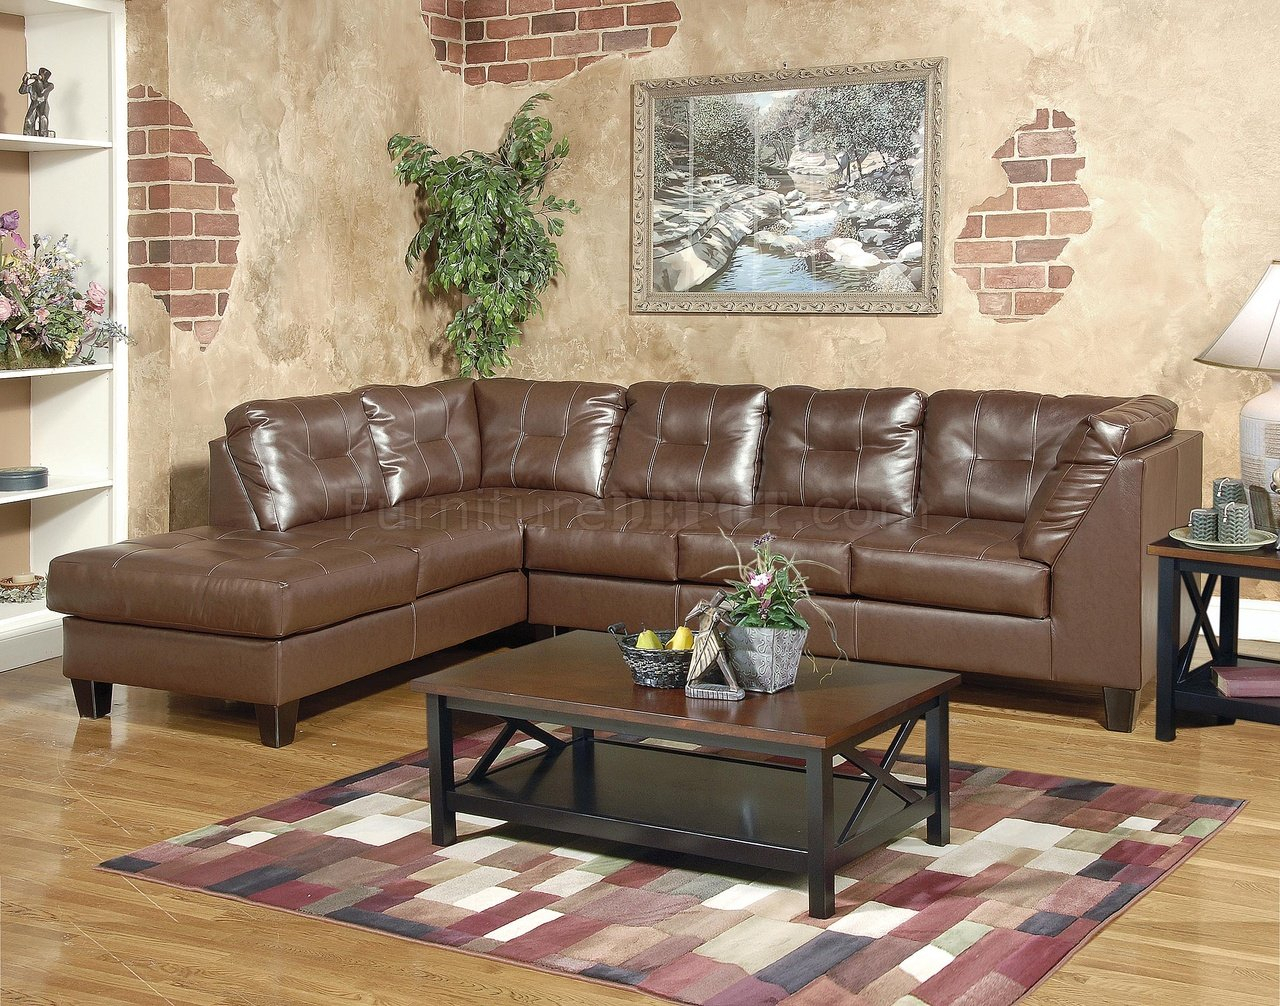 Brown Bonded Leather Modern Sectional Sofa W/Tufted Seats Intended For Sectional Sofas With Oversized Ottoman (View 7 of 15)